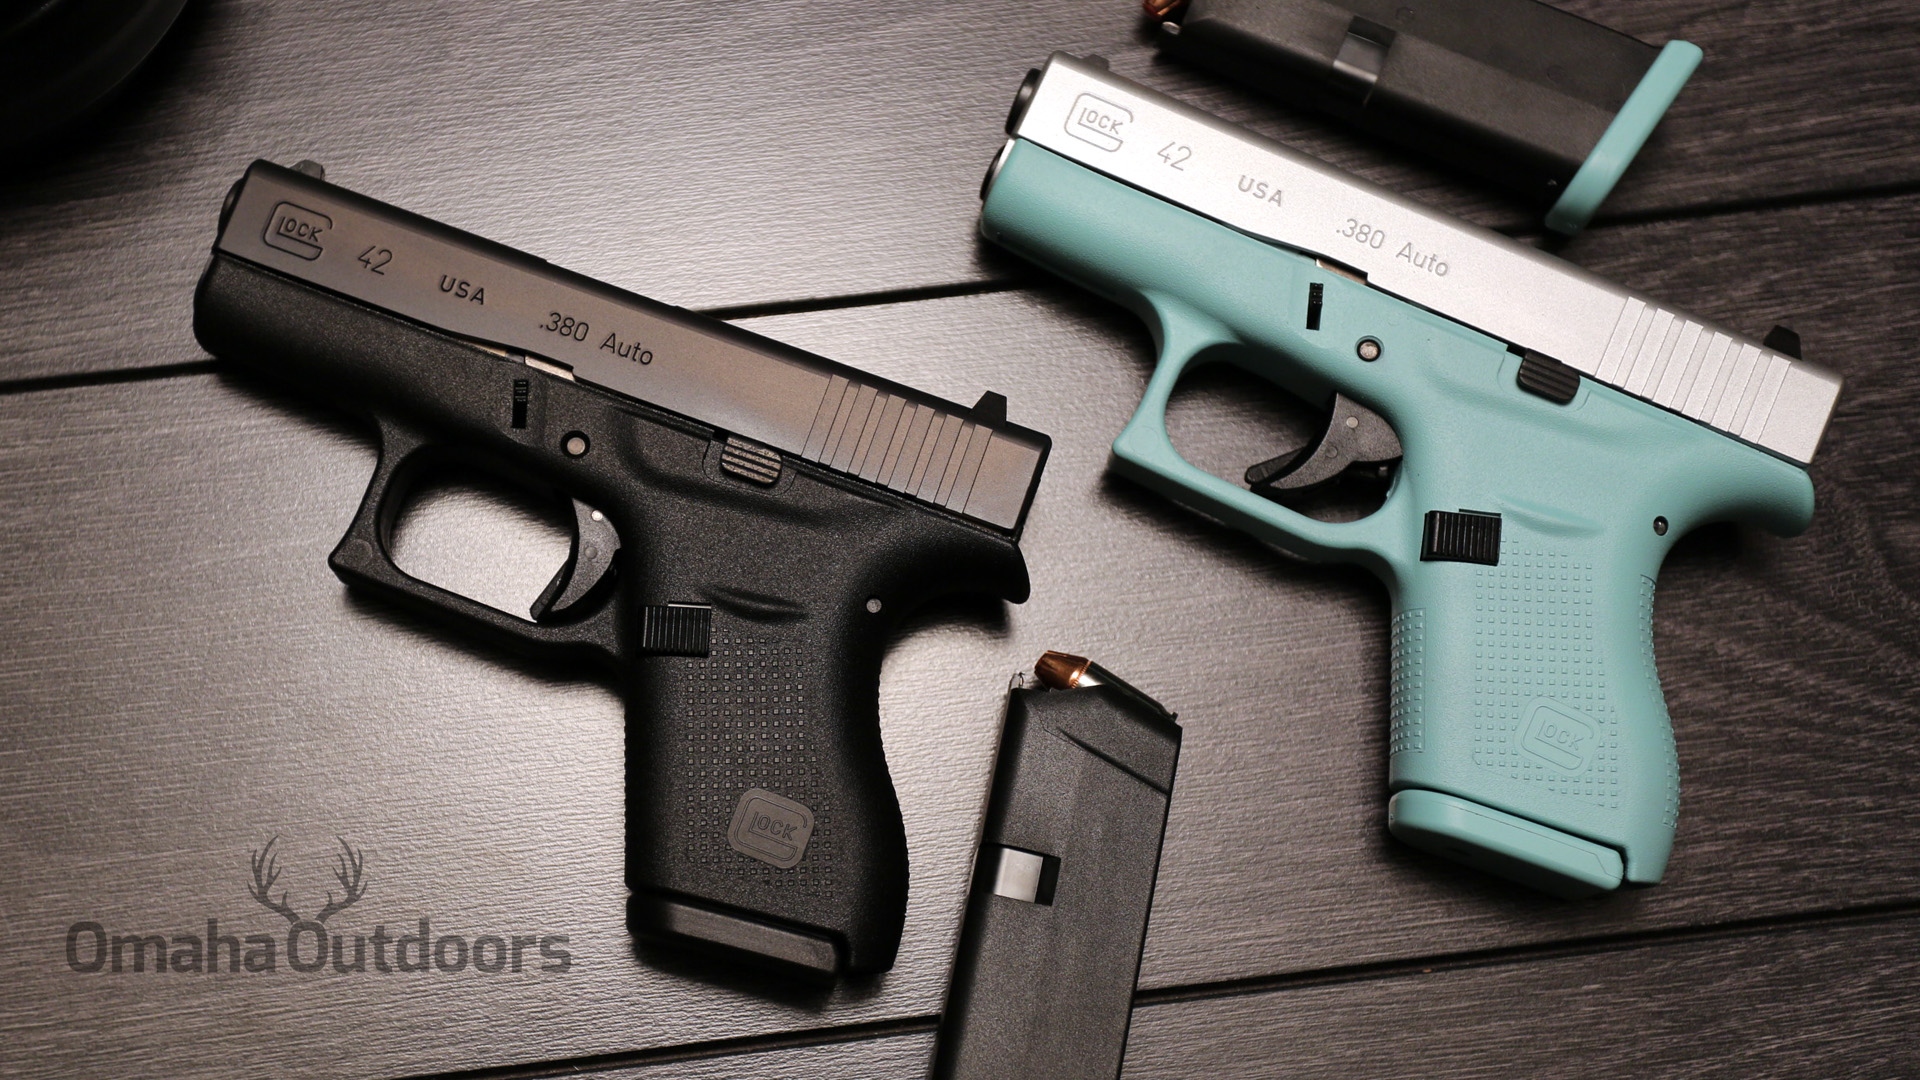 Gun Review: Glock 42 - Conceal Carry Gun That Won't Disappoint - Omaha Outdoors Blog